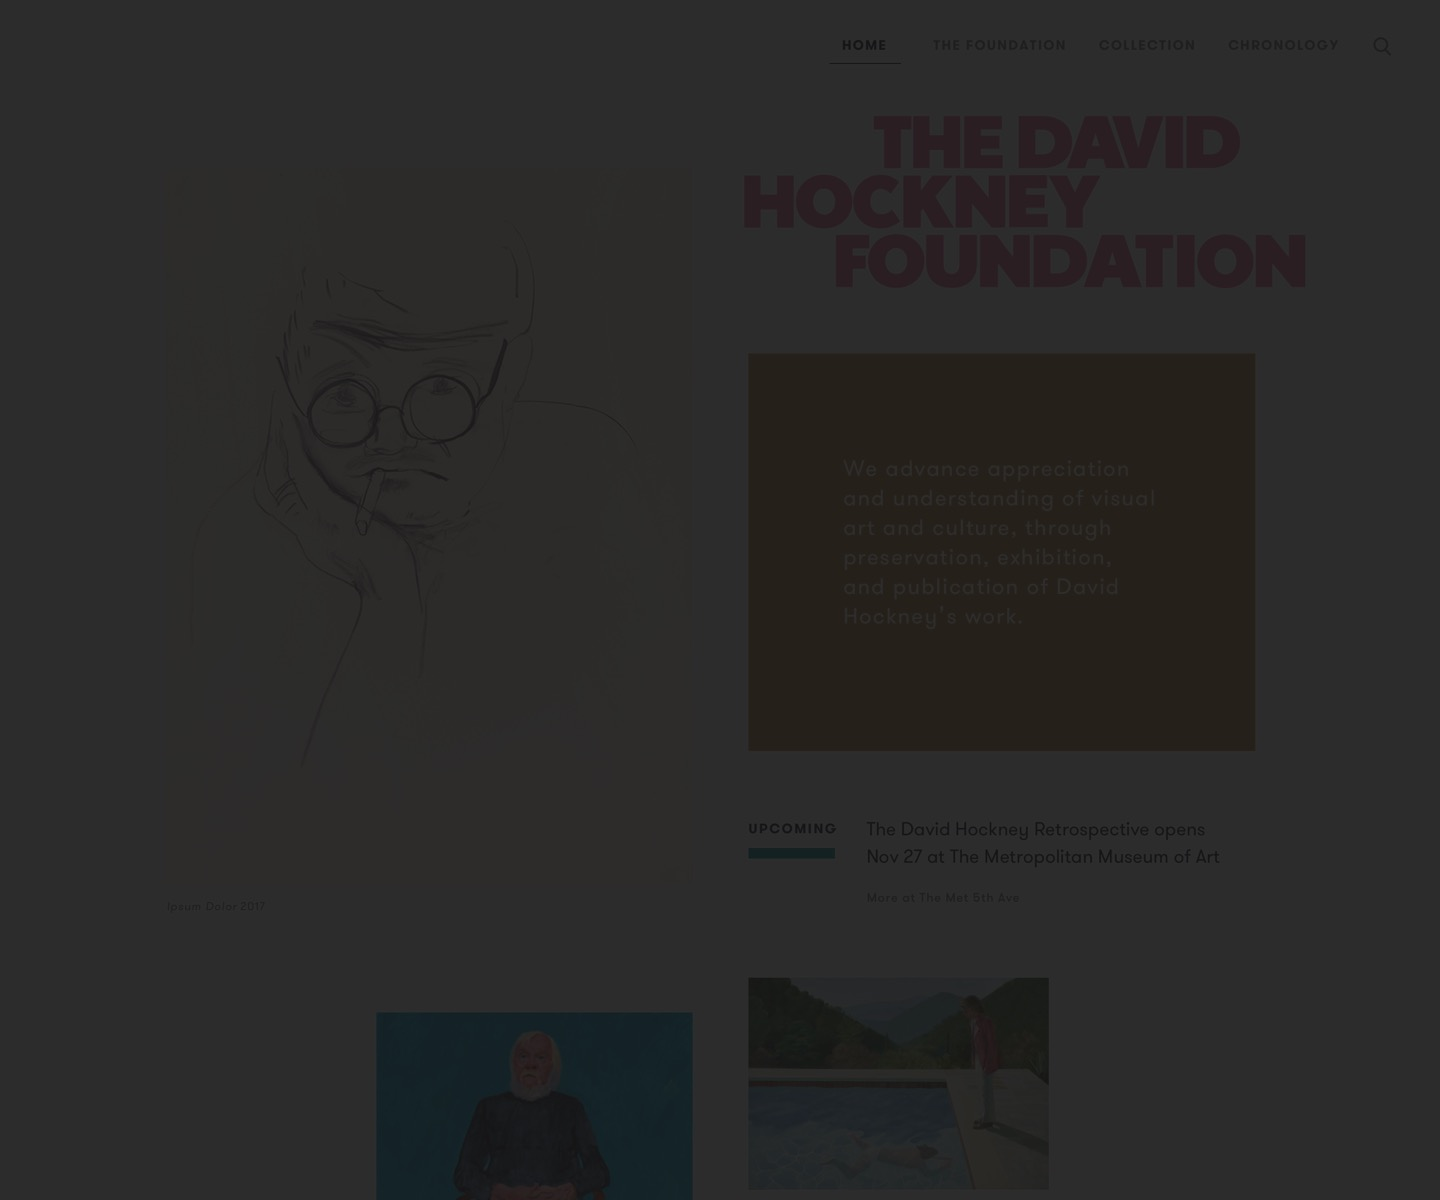 David Hockney Case Study